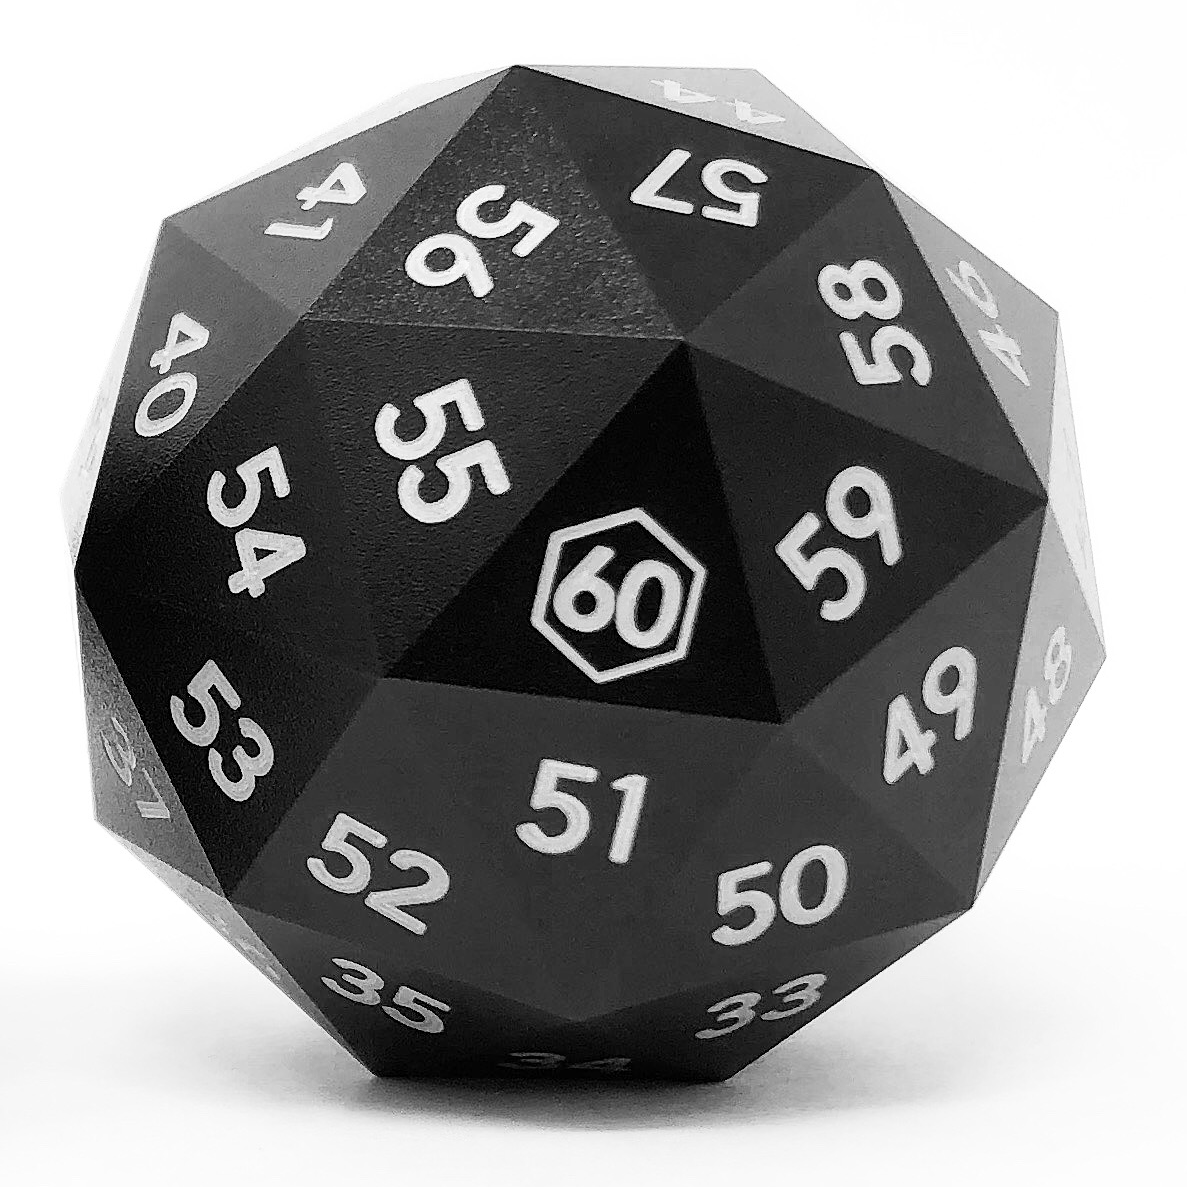 d60 Spindown